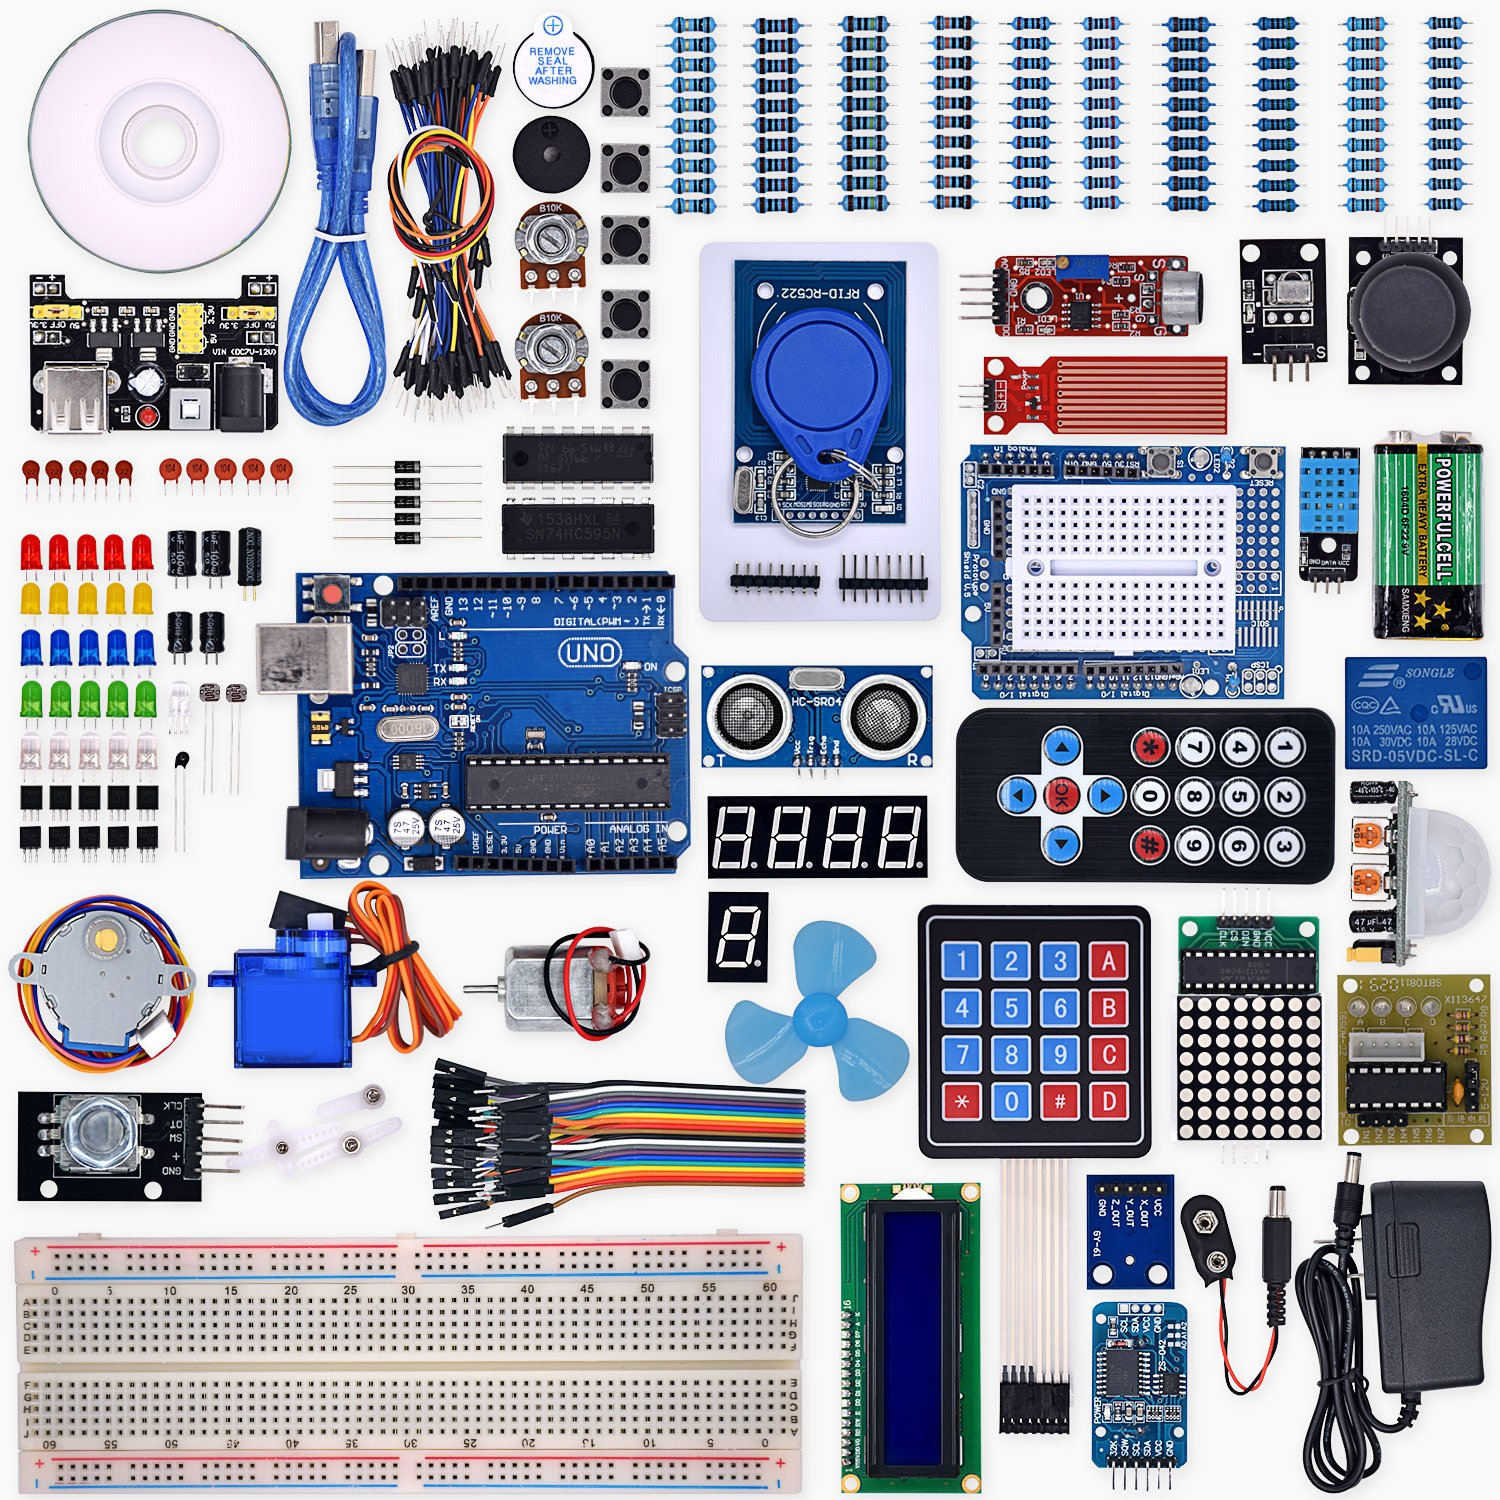 Weikedz Uno R3 Project Complete Starter Kit With Lesson Built The Circuit Described Here On My Protoboard Http Wild Cd Jumper Wire For Arduino Computers Accessories